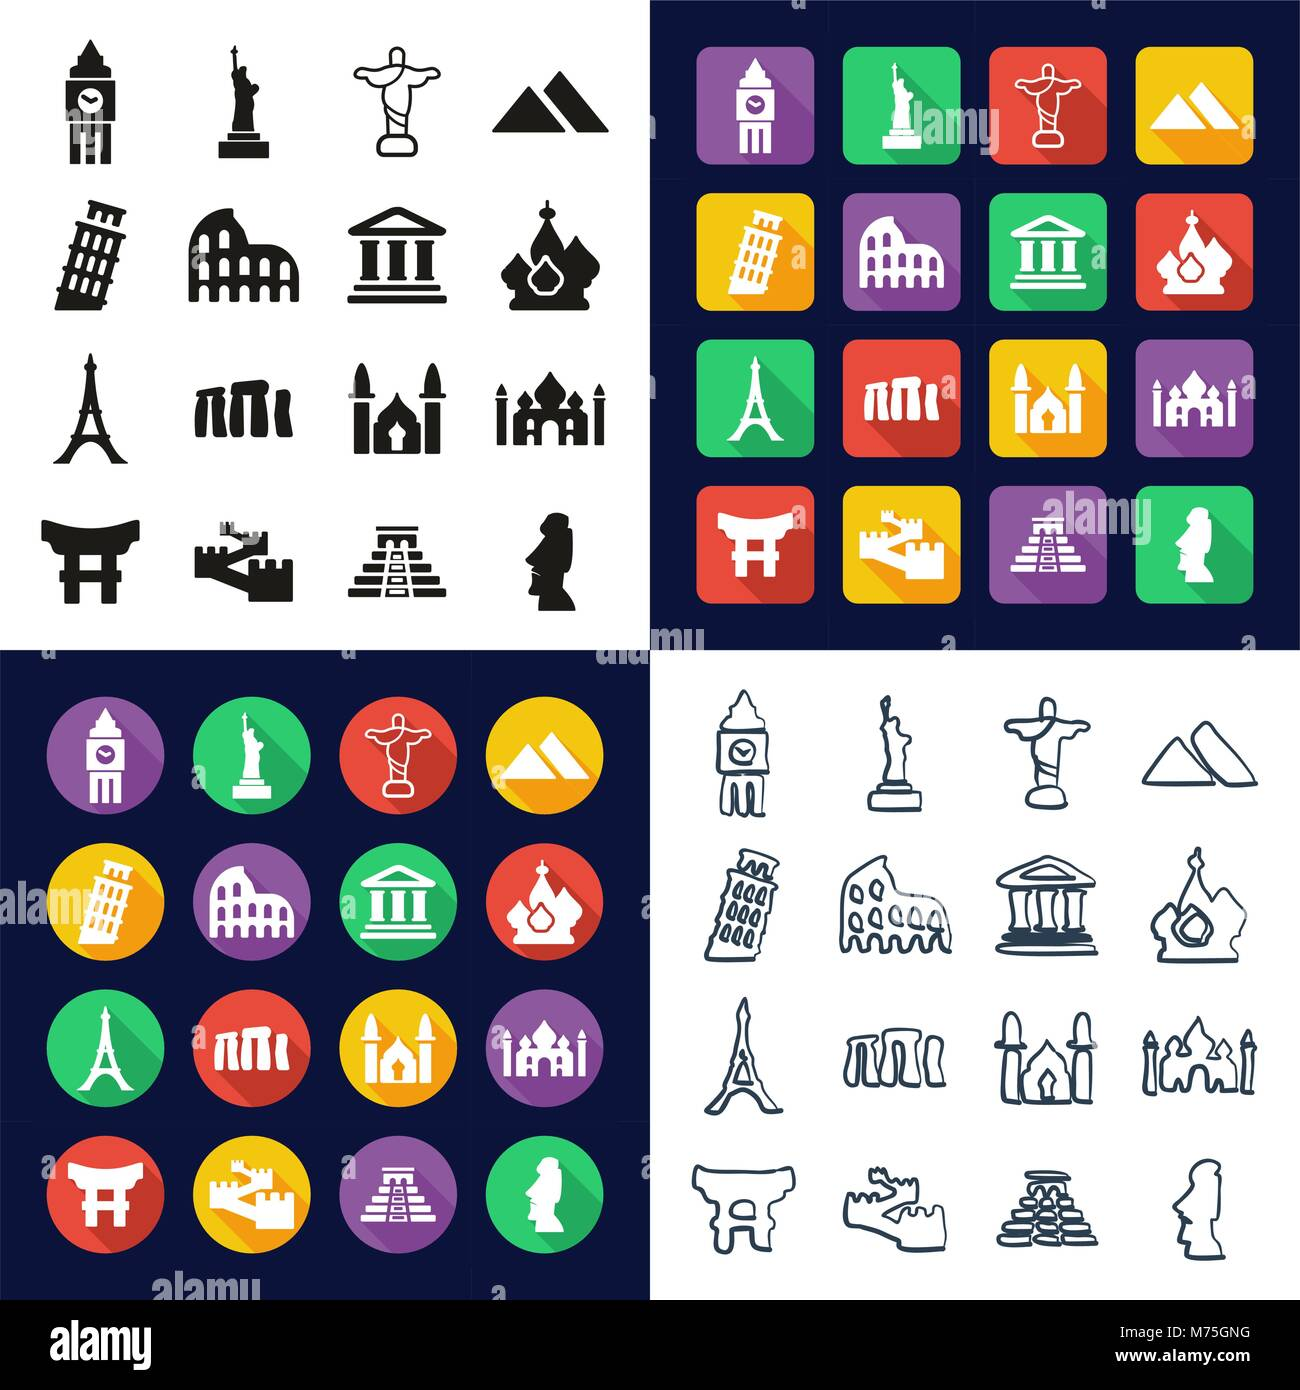 Landmarks Of The World All in One Icons Black & White Color Flat Design Freehand Set Stock Vector